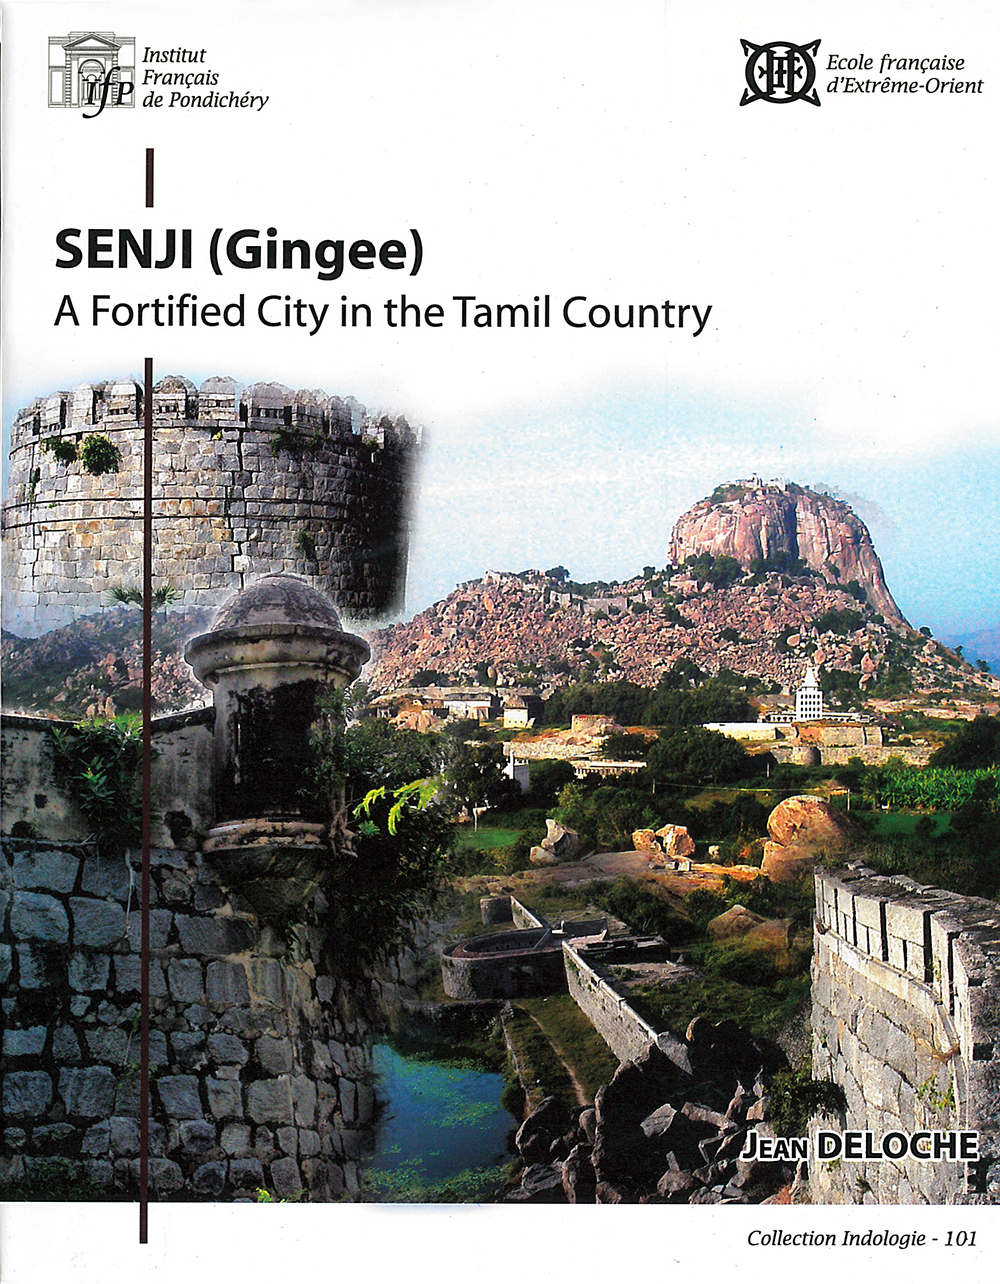 Senji (Gingee): a fortified city in the Tamil country